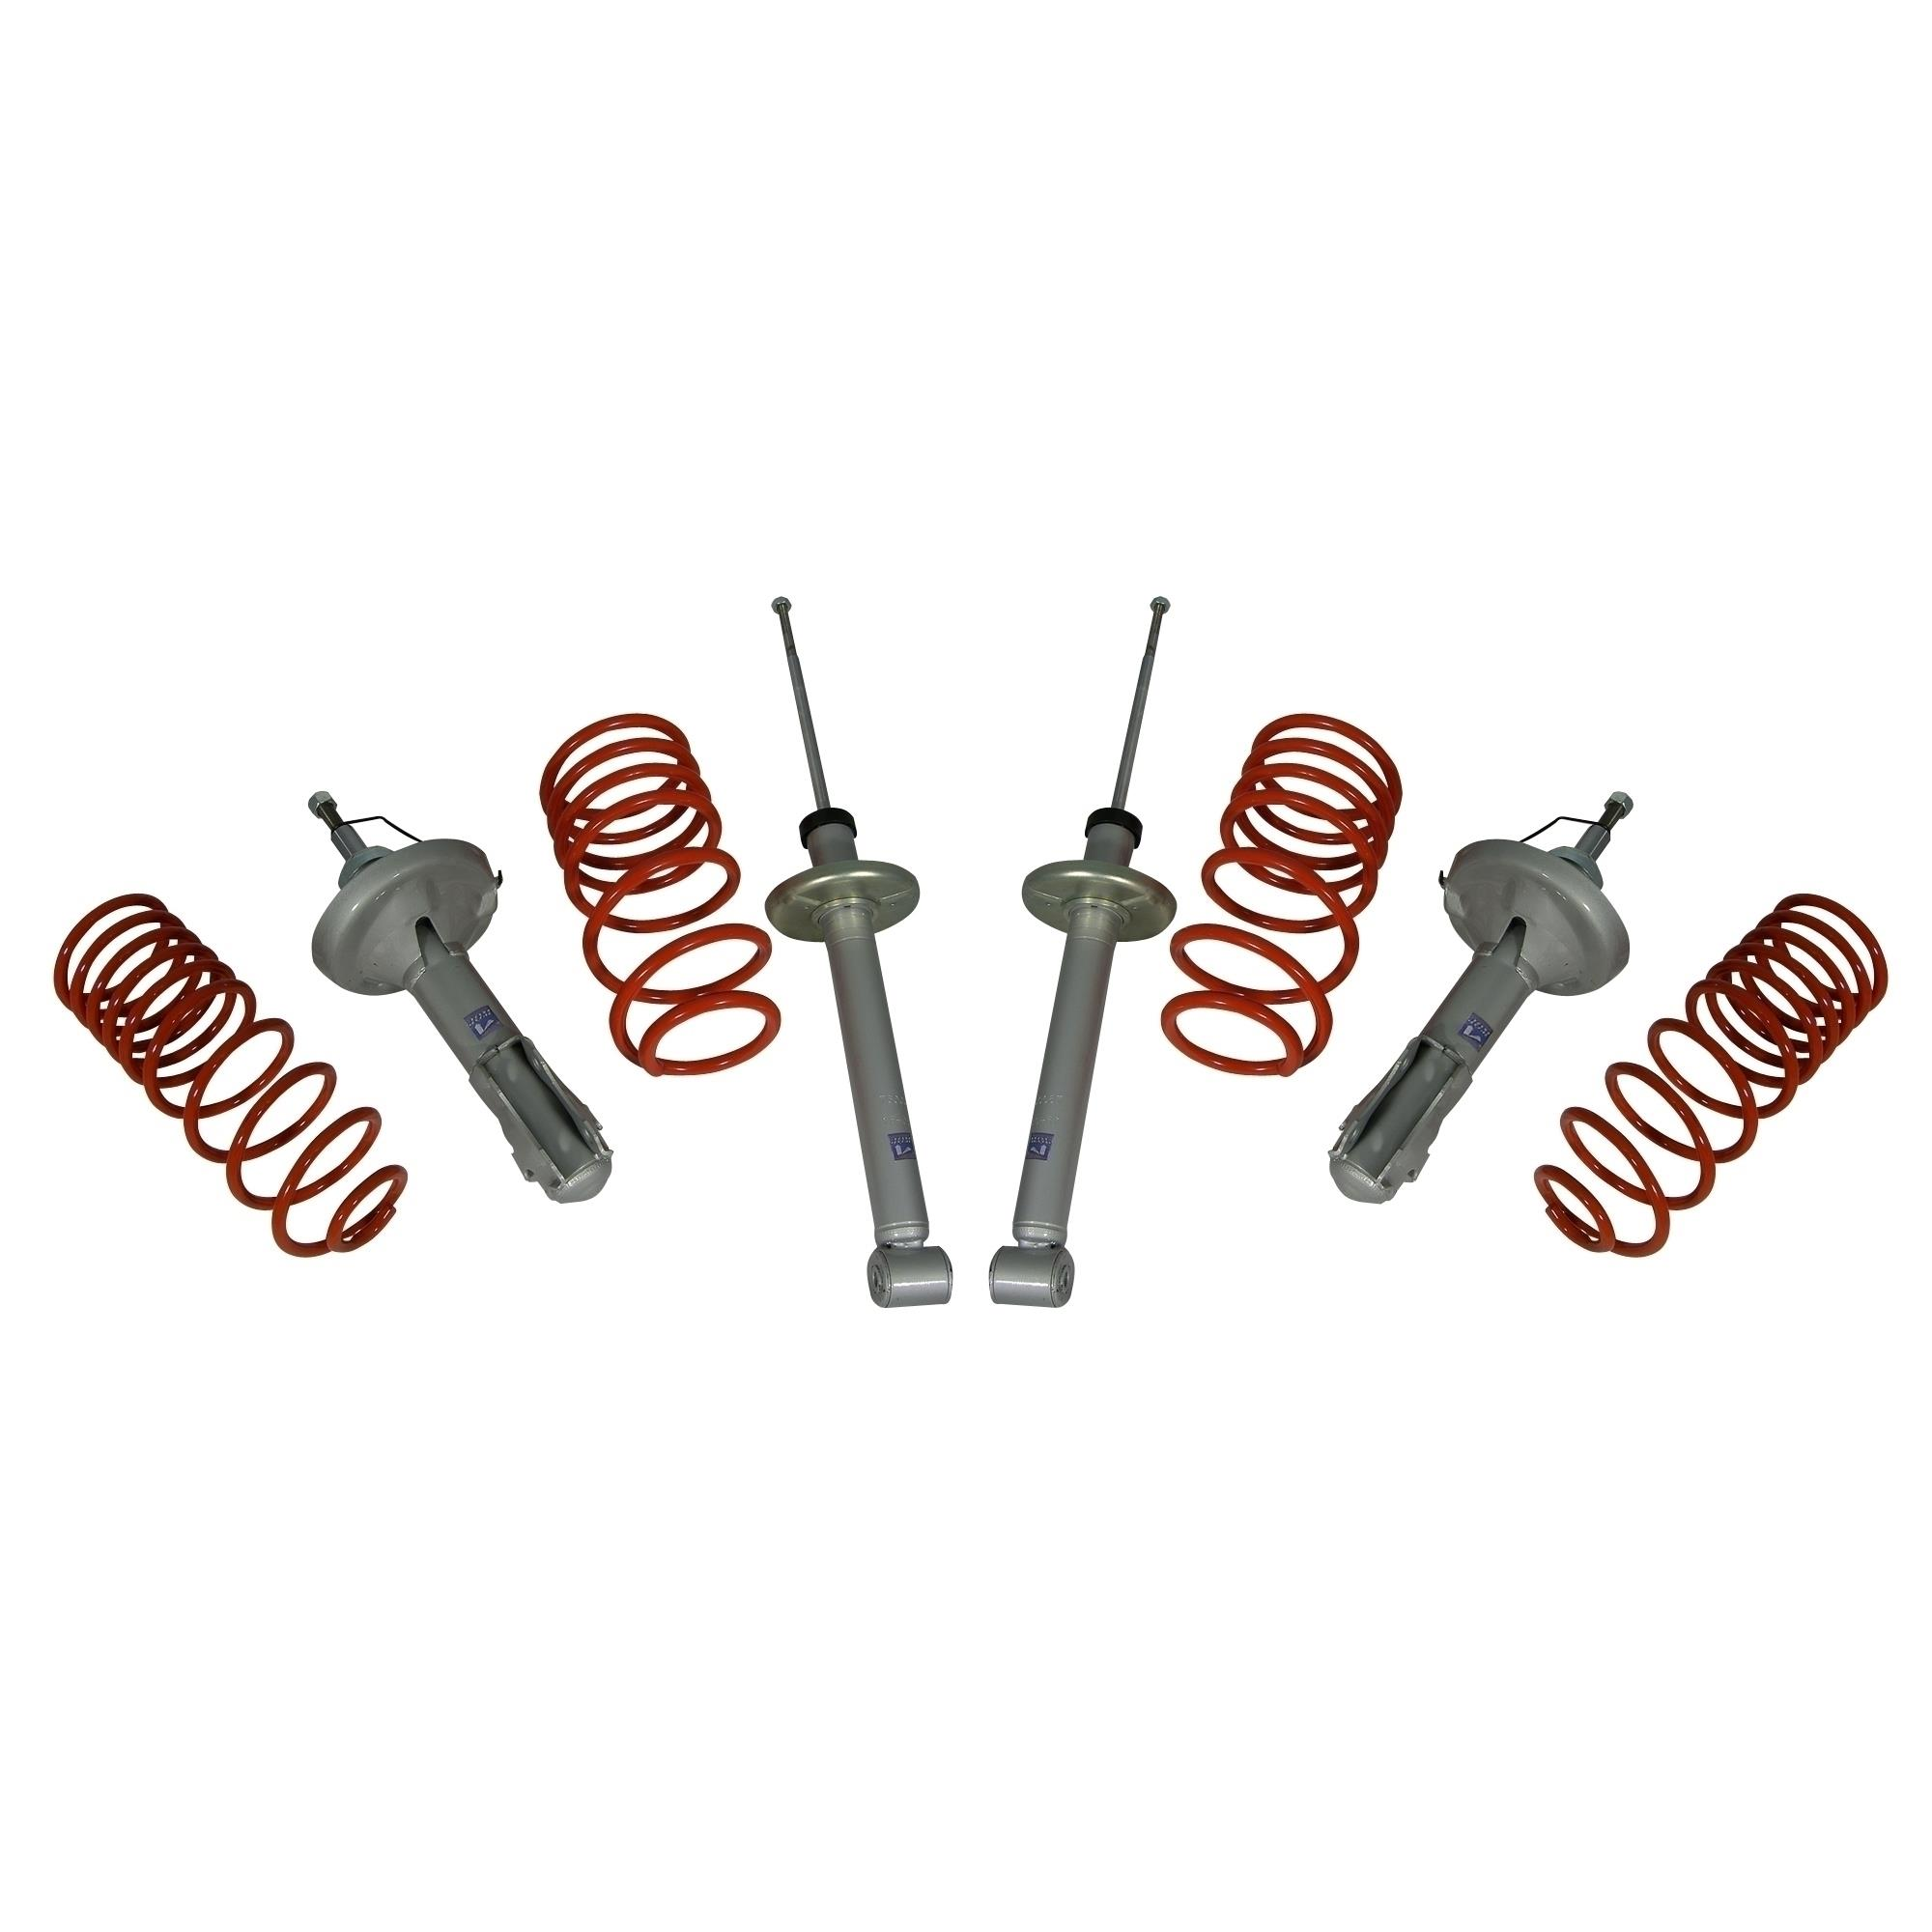 JOM - JOM suspension kit Audi A3 1,6 (strut 54,60mm) type 8P, KW 75-85, 05/2003-, 40mm, T�V approved - 761087